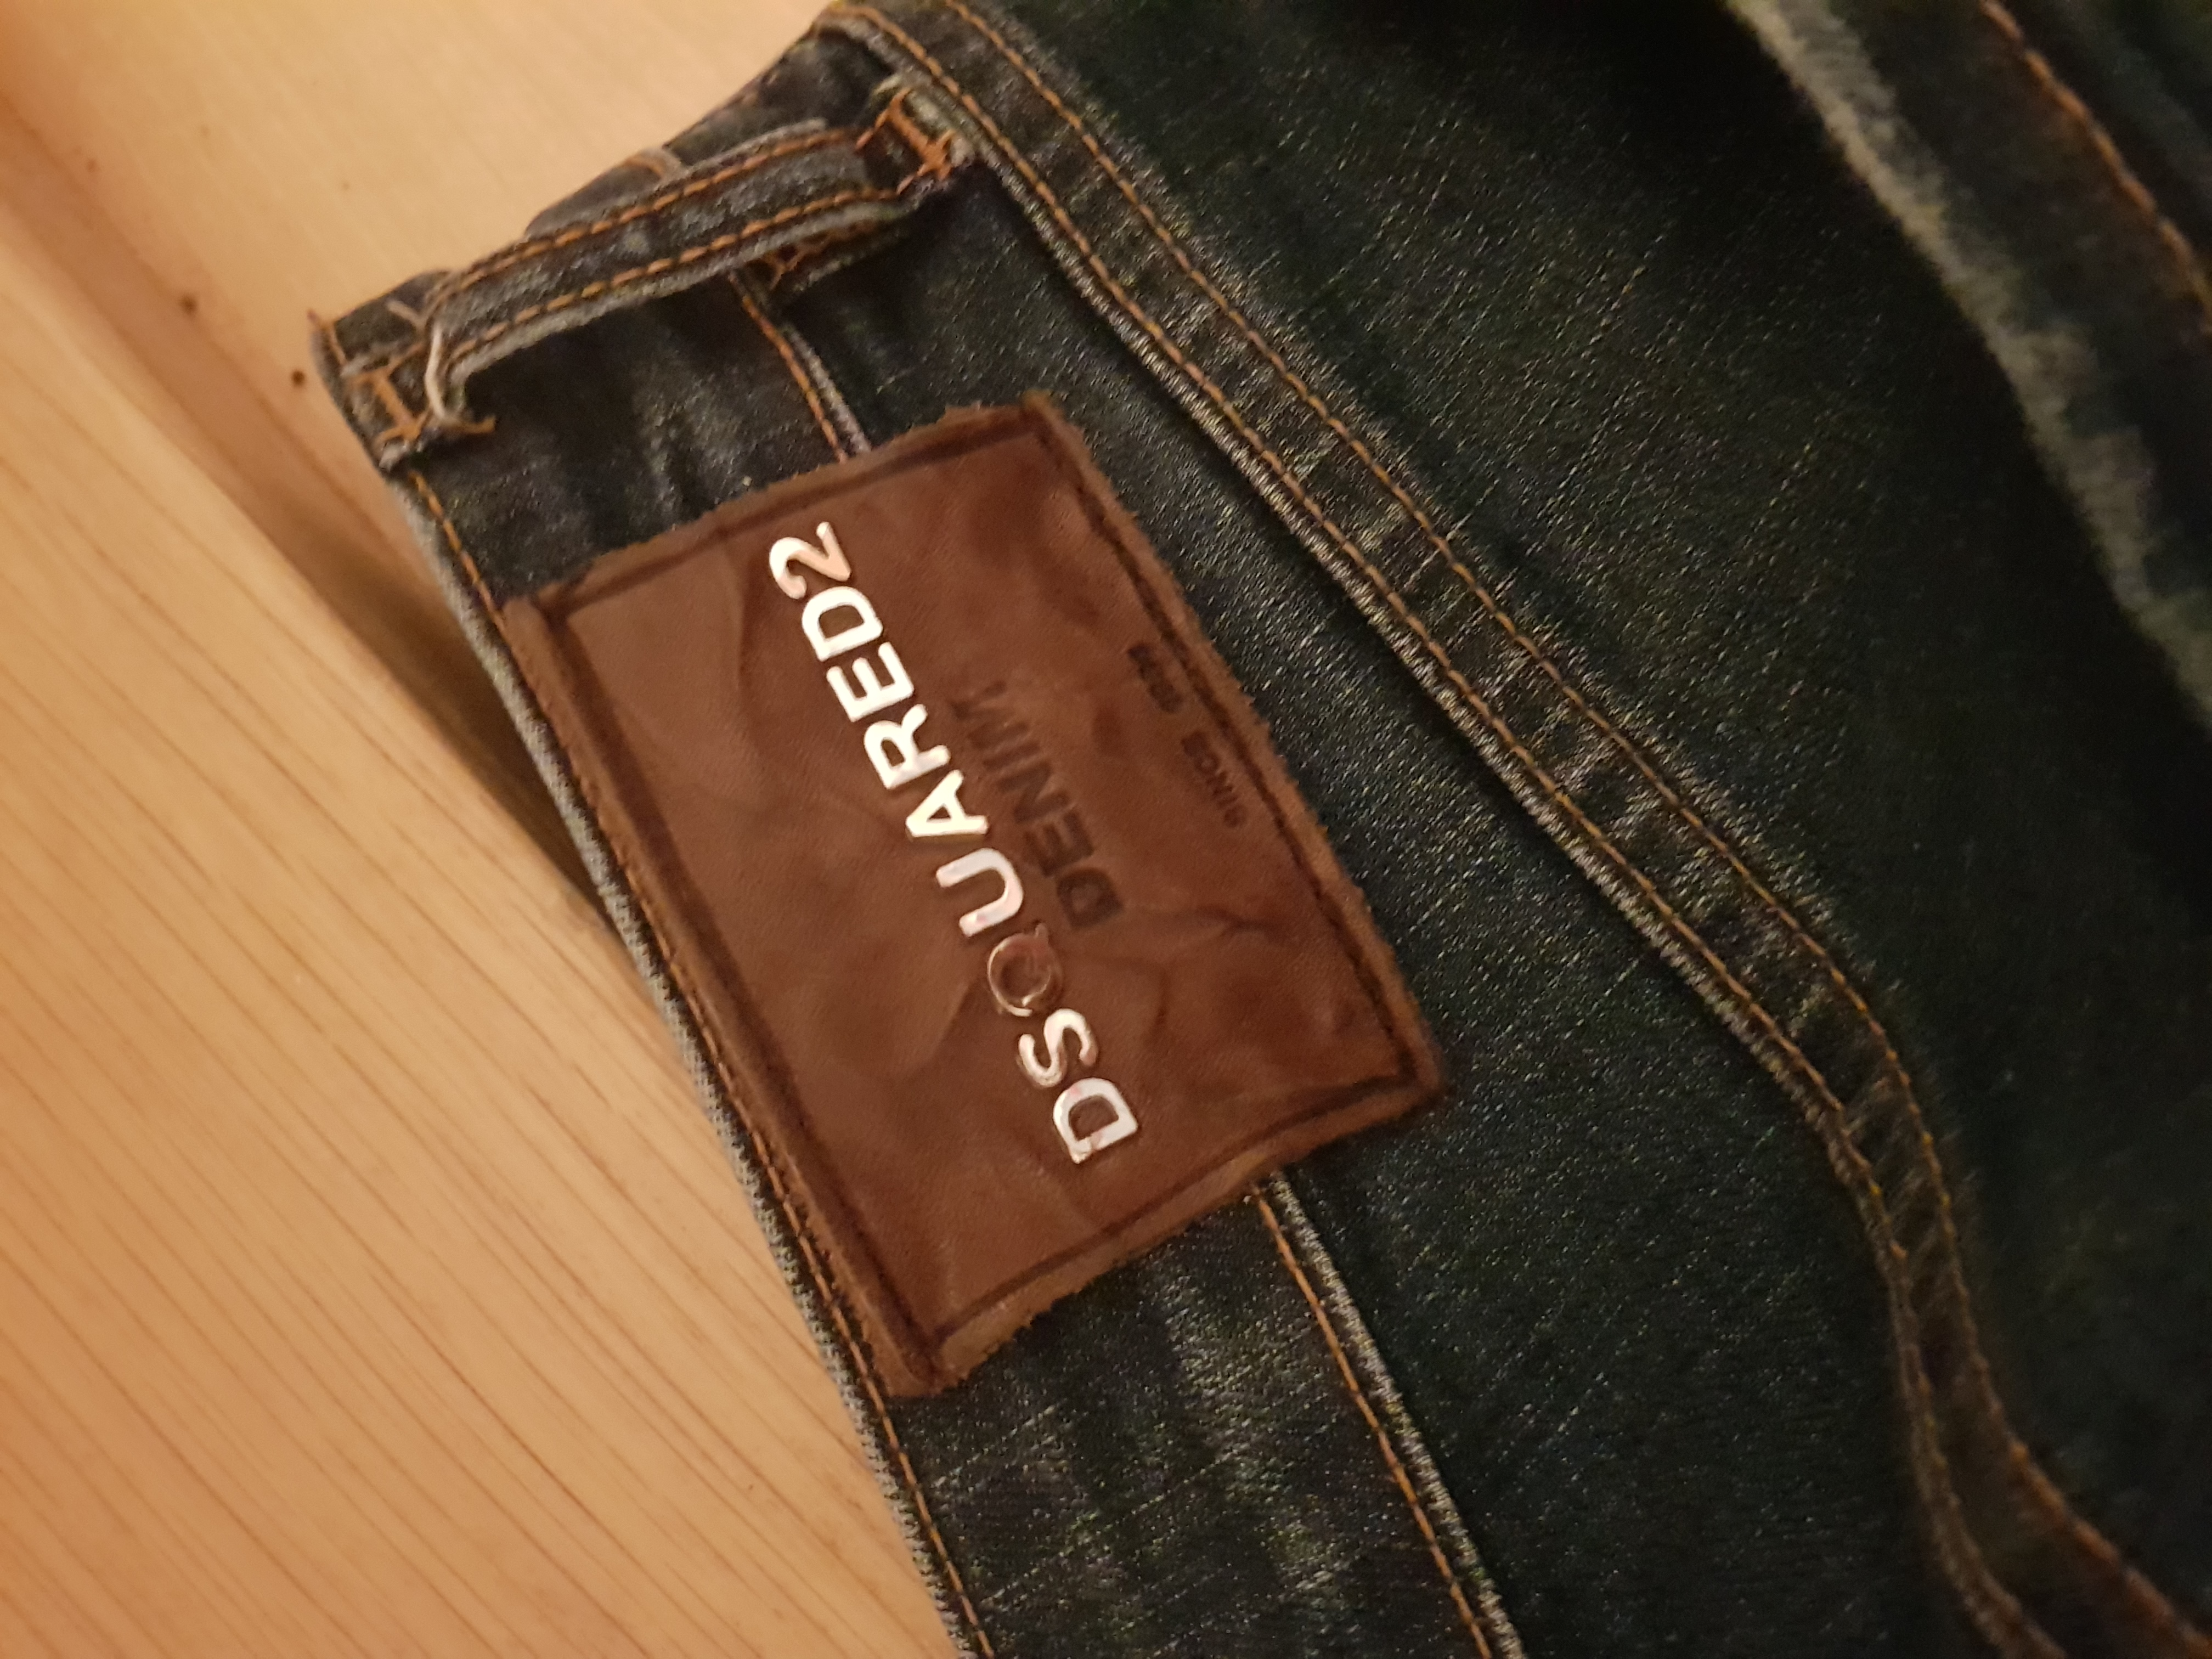 a7be1b3004d Is my Dsquared2 jeans legit? - The eBay Community